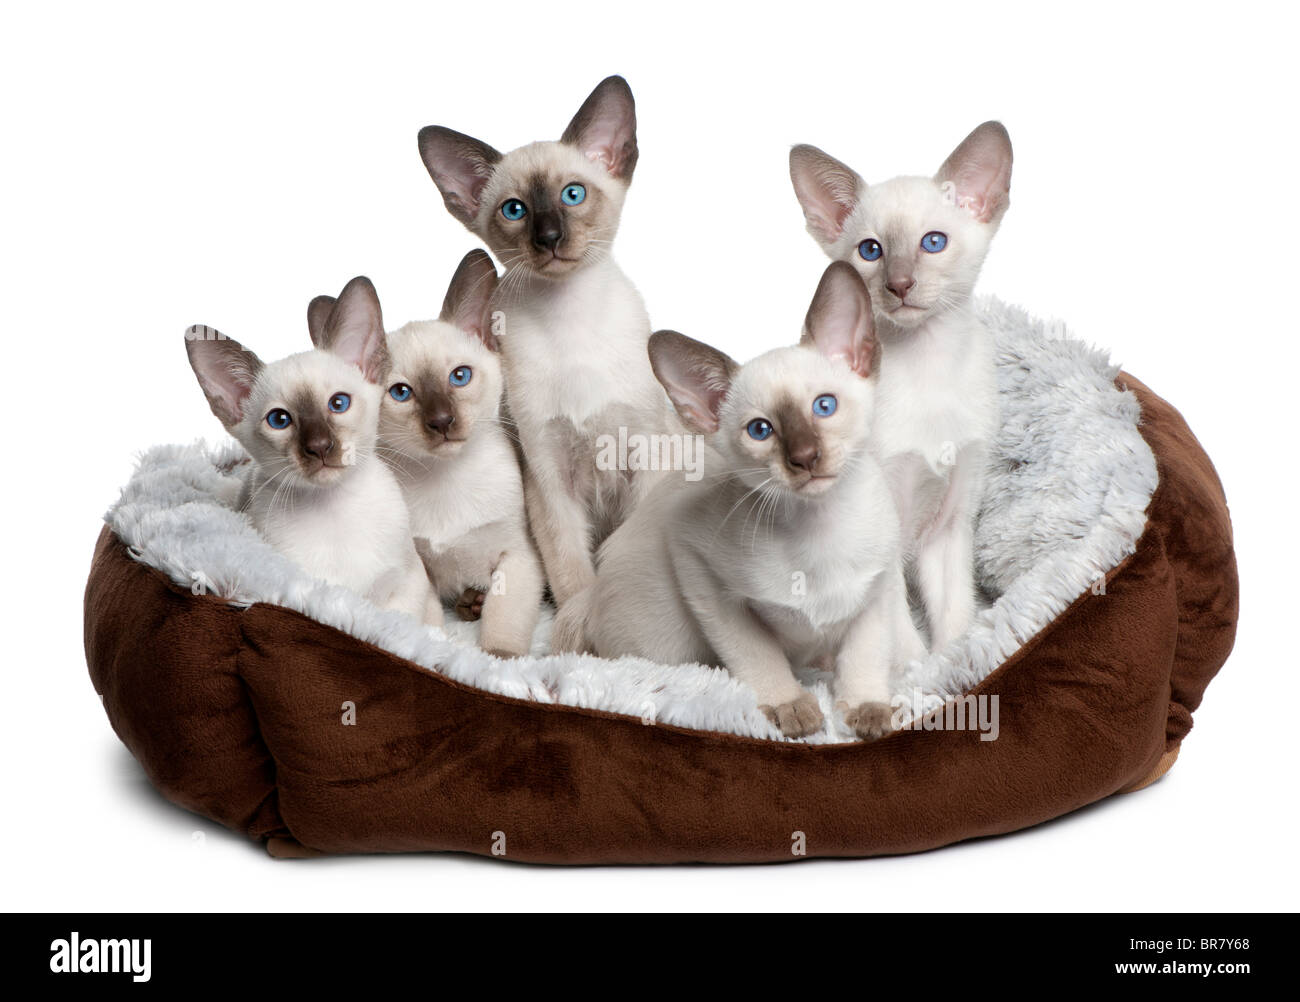 Five Siamese Kittens, 10 weeks old, sitting in cat bed in front of white background - Stock Image